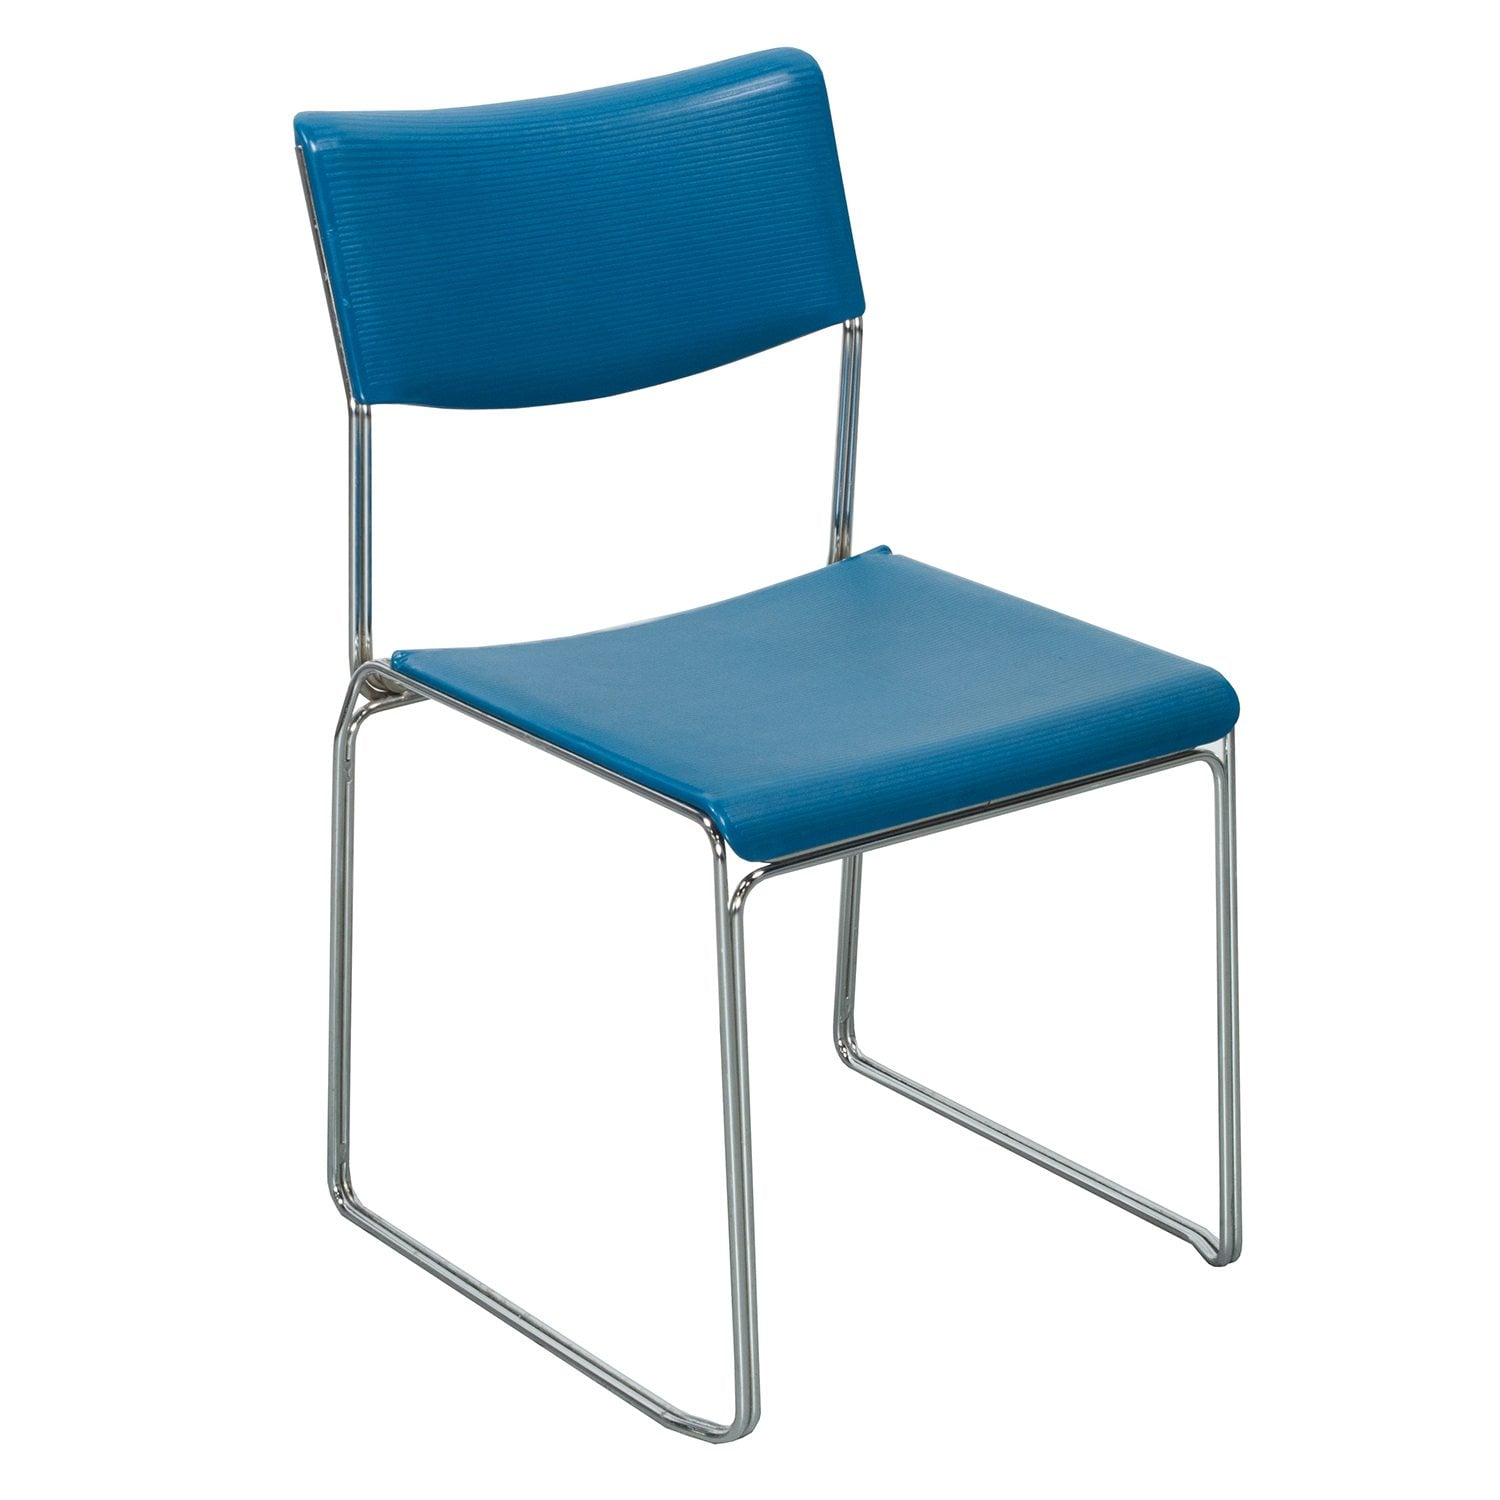 Teal Chair Comforto Used Stack Chair Teal National Office